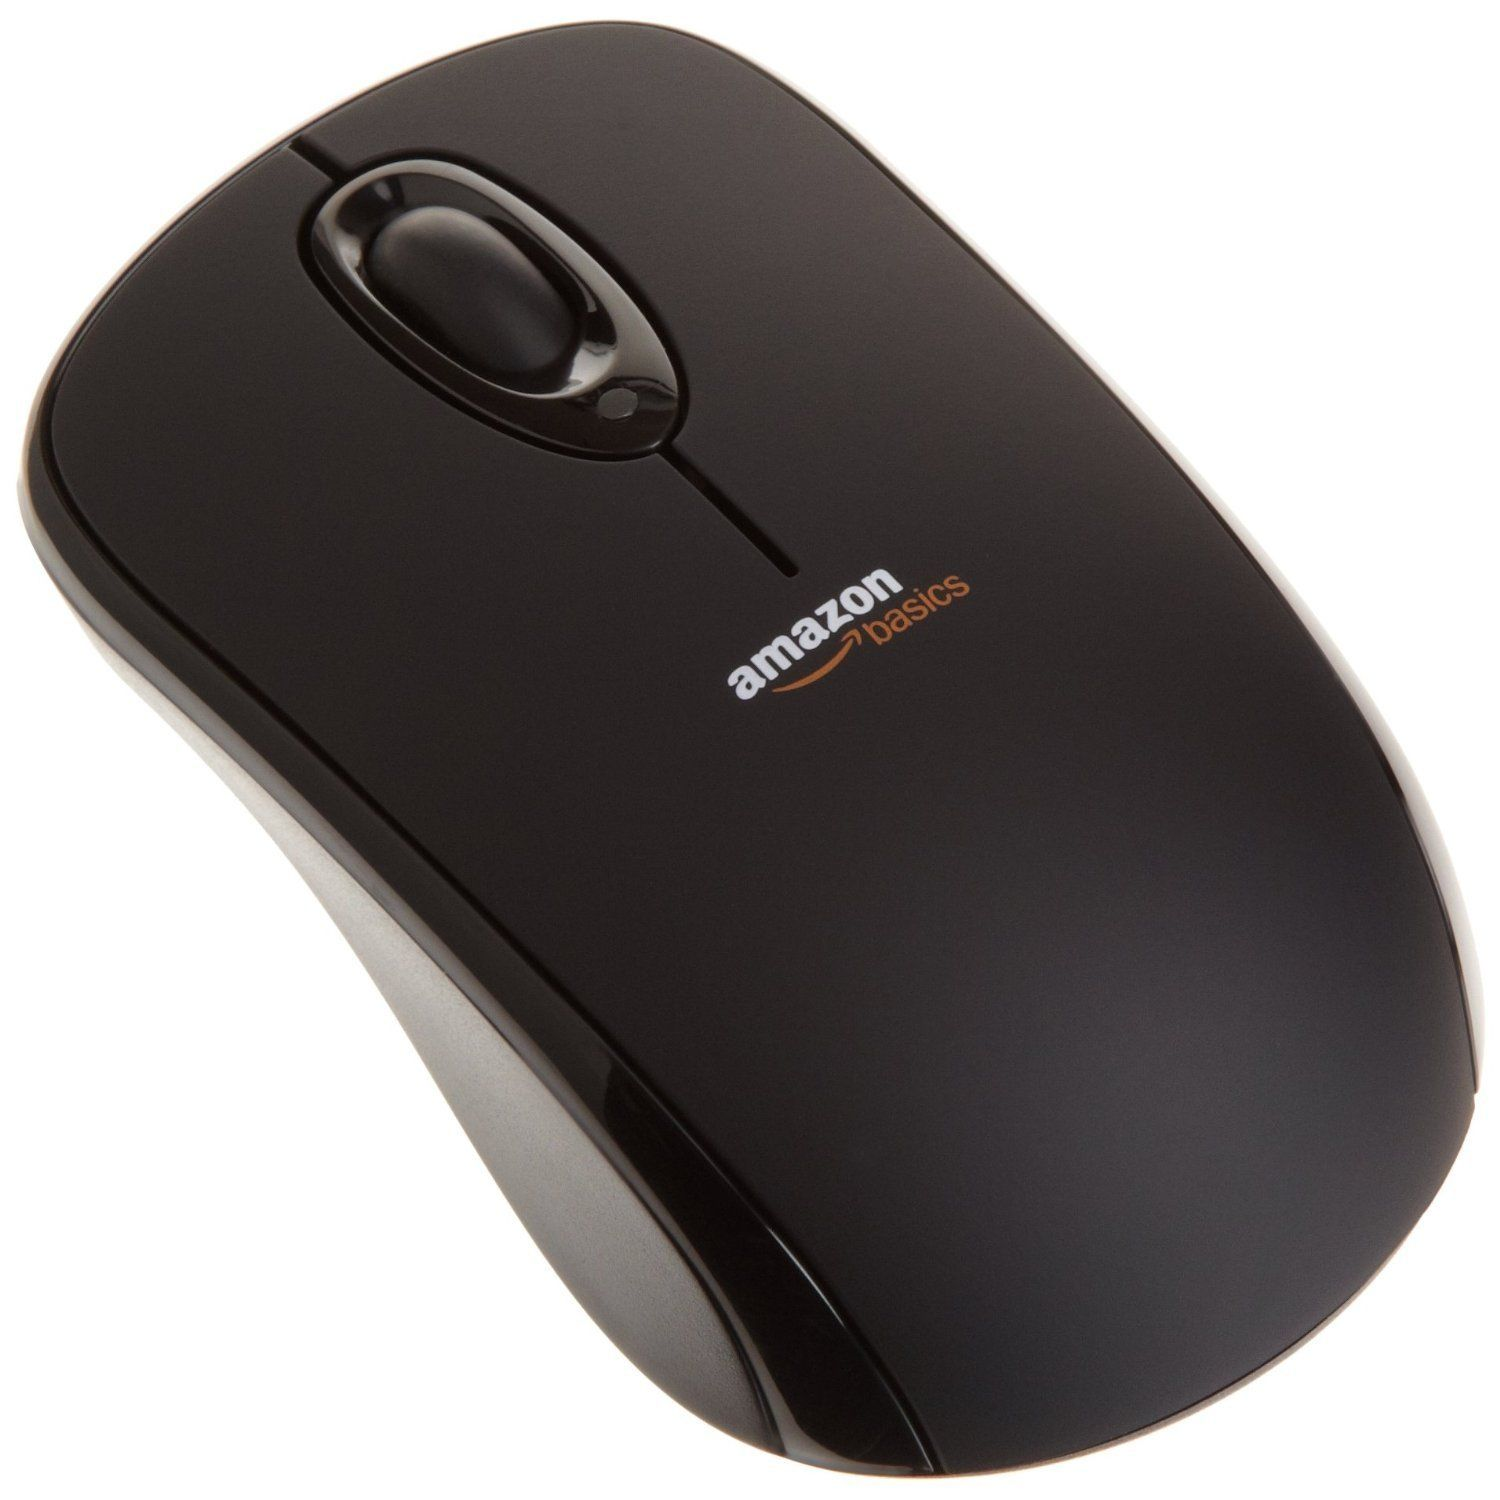 amazonbasics wireless mouse with nano receiver mgr0975 computers accessories. Black Bedroom Furniture Sets. Home Design Ideas